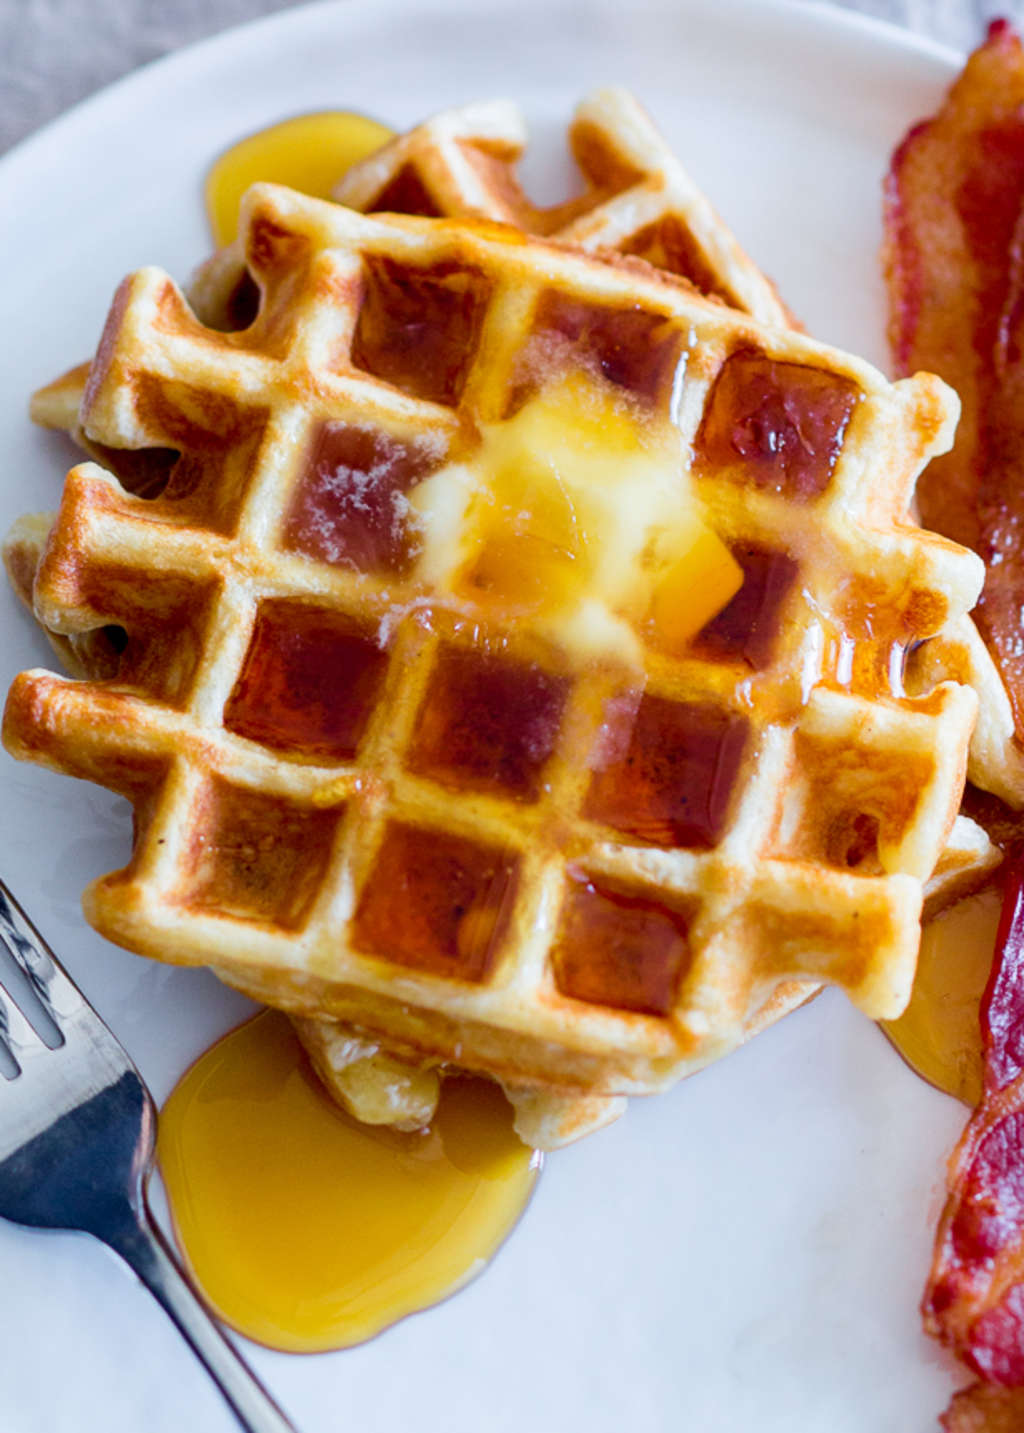 How To Make the Lightest, Crispiest Waffles: The Video